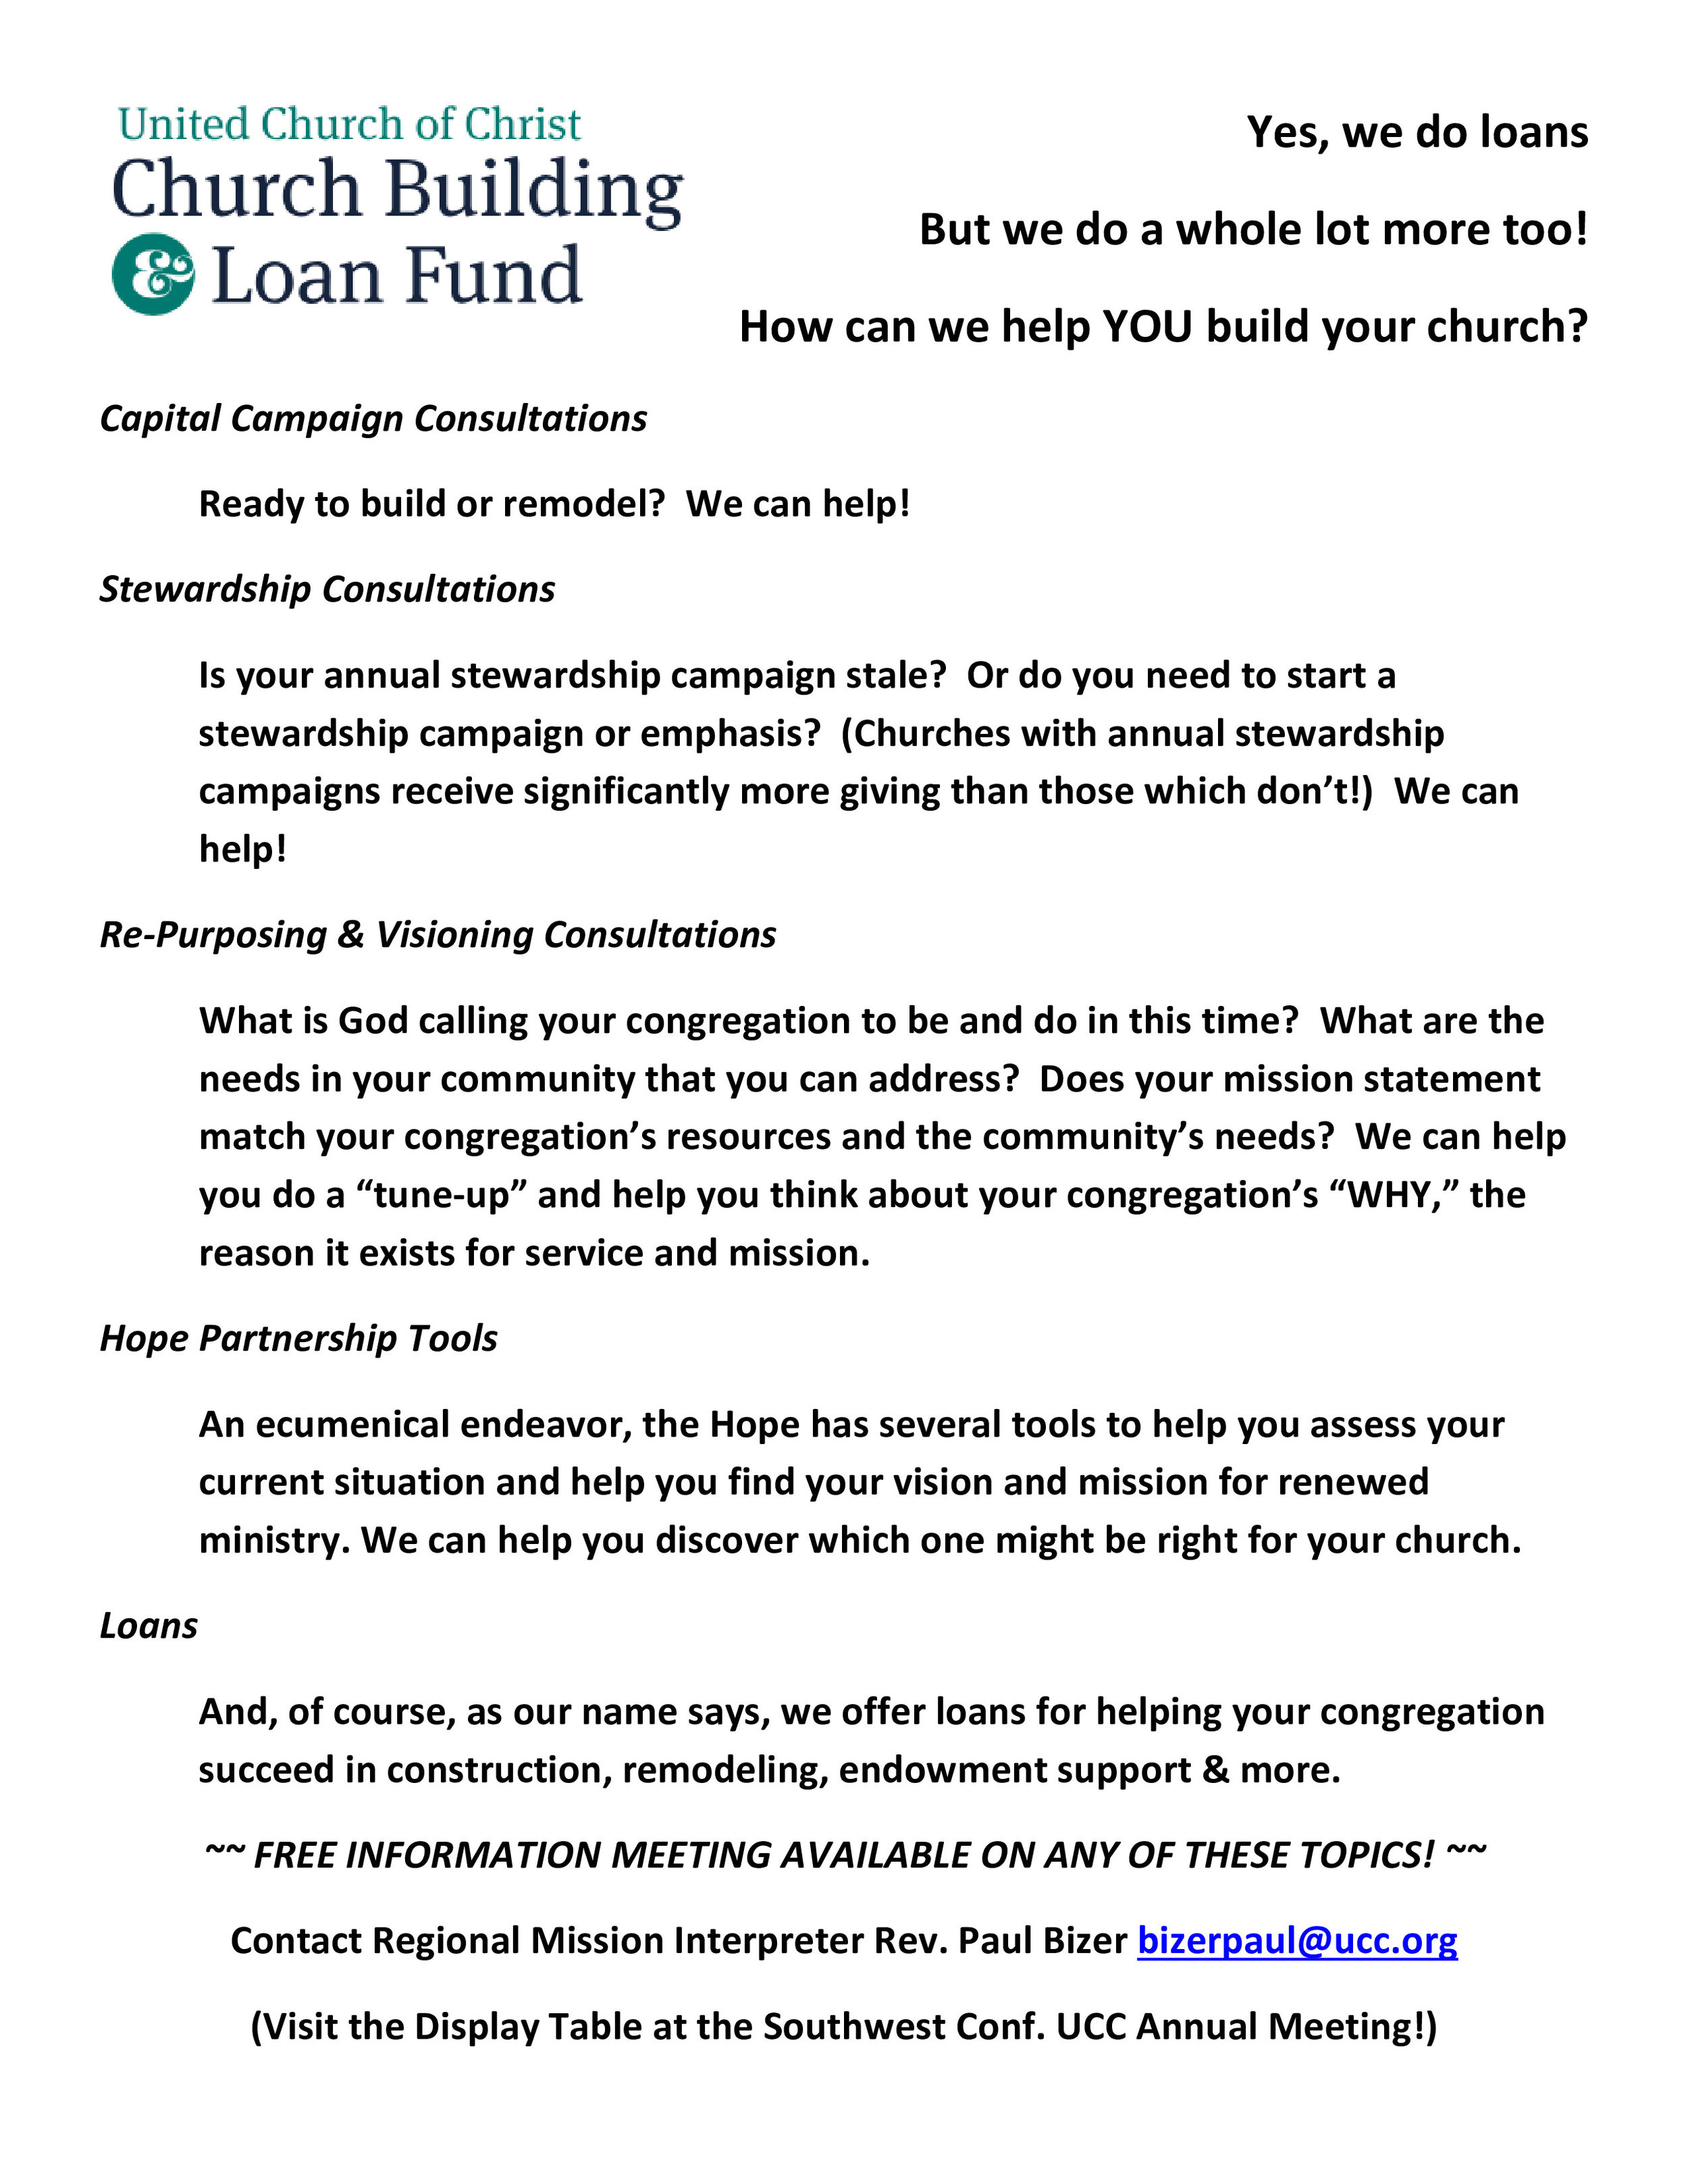 CBLF church building and loan fund More than just loans.jpg